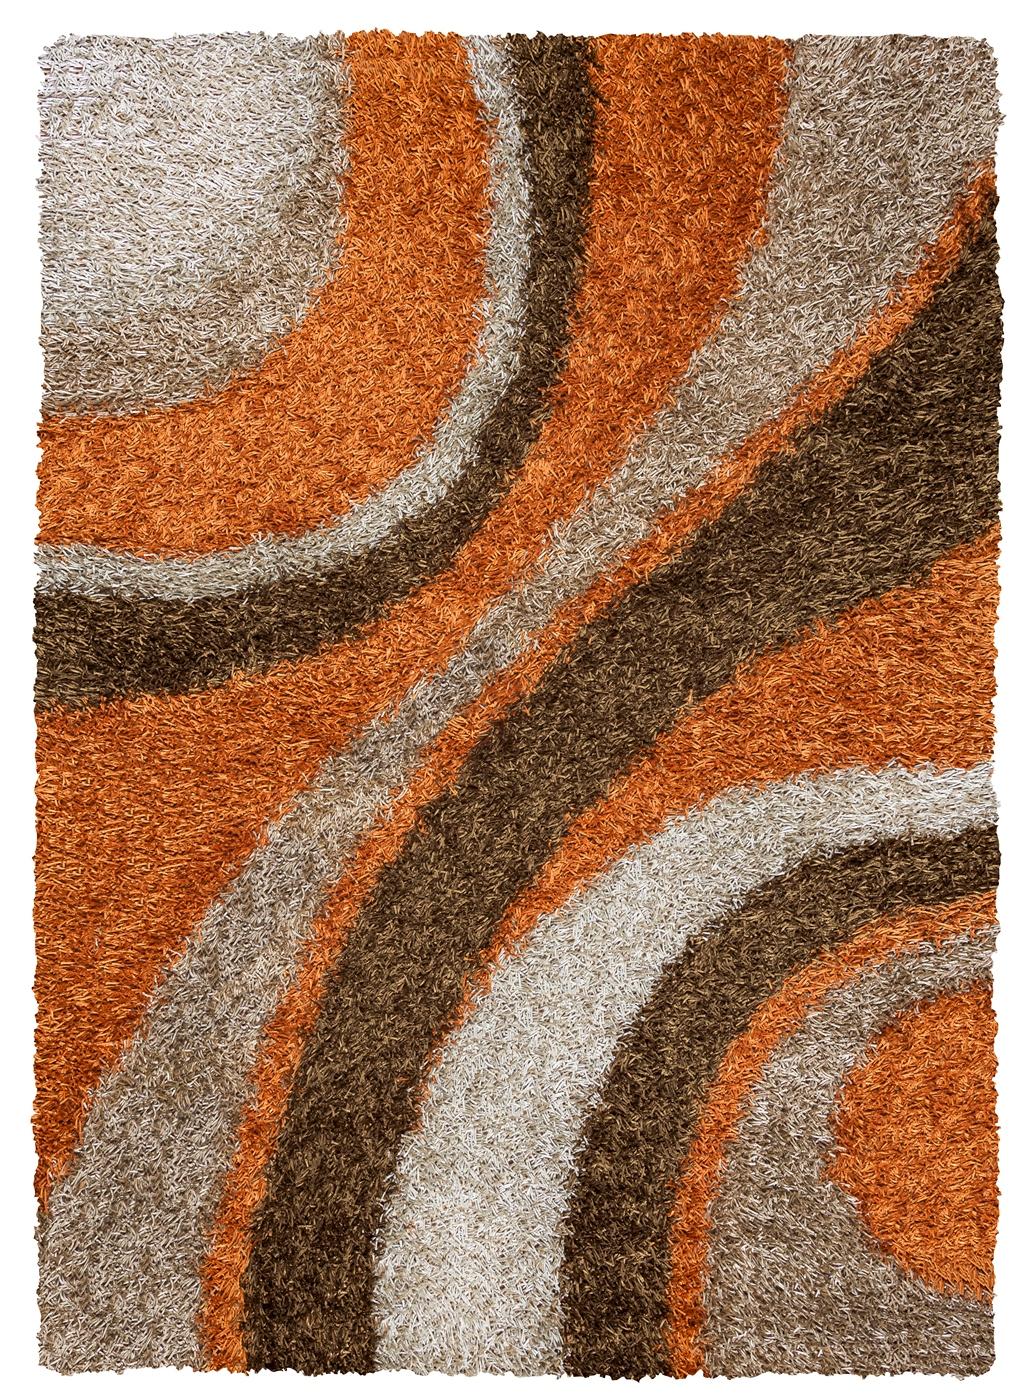 Kempton Ultra Plush Striped Area Rug In Orange Brown Khaki